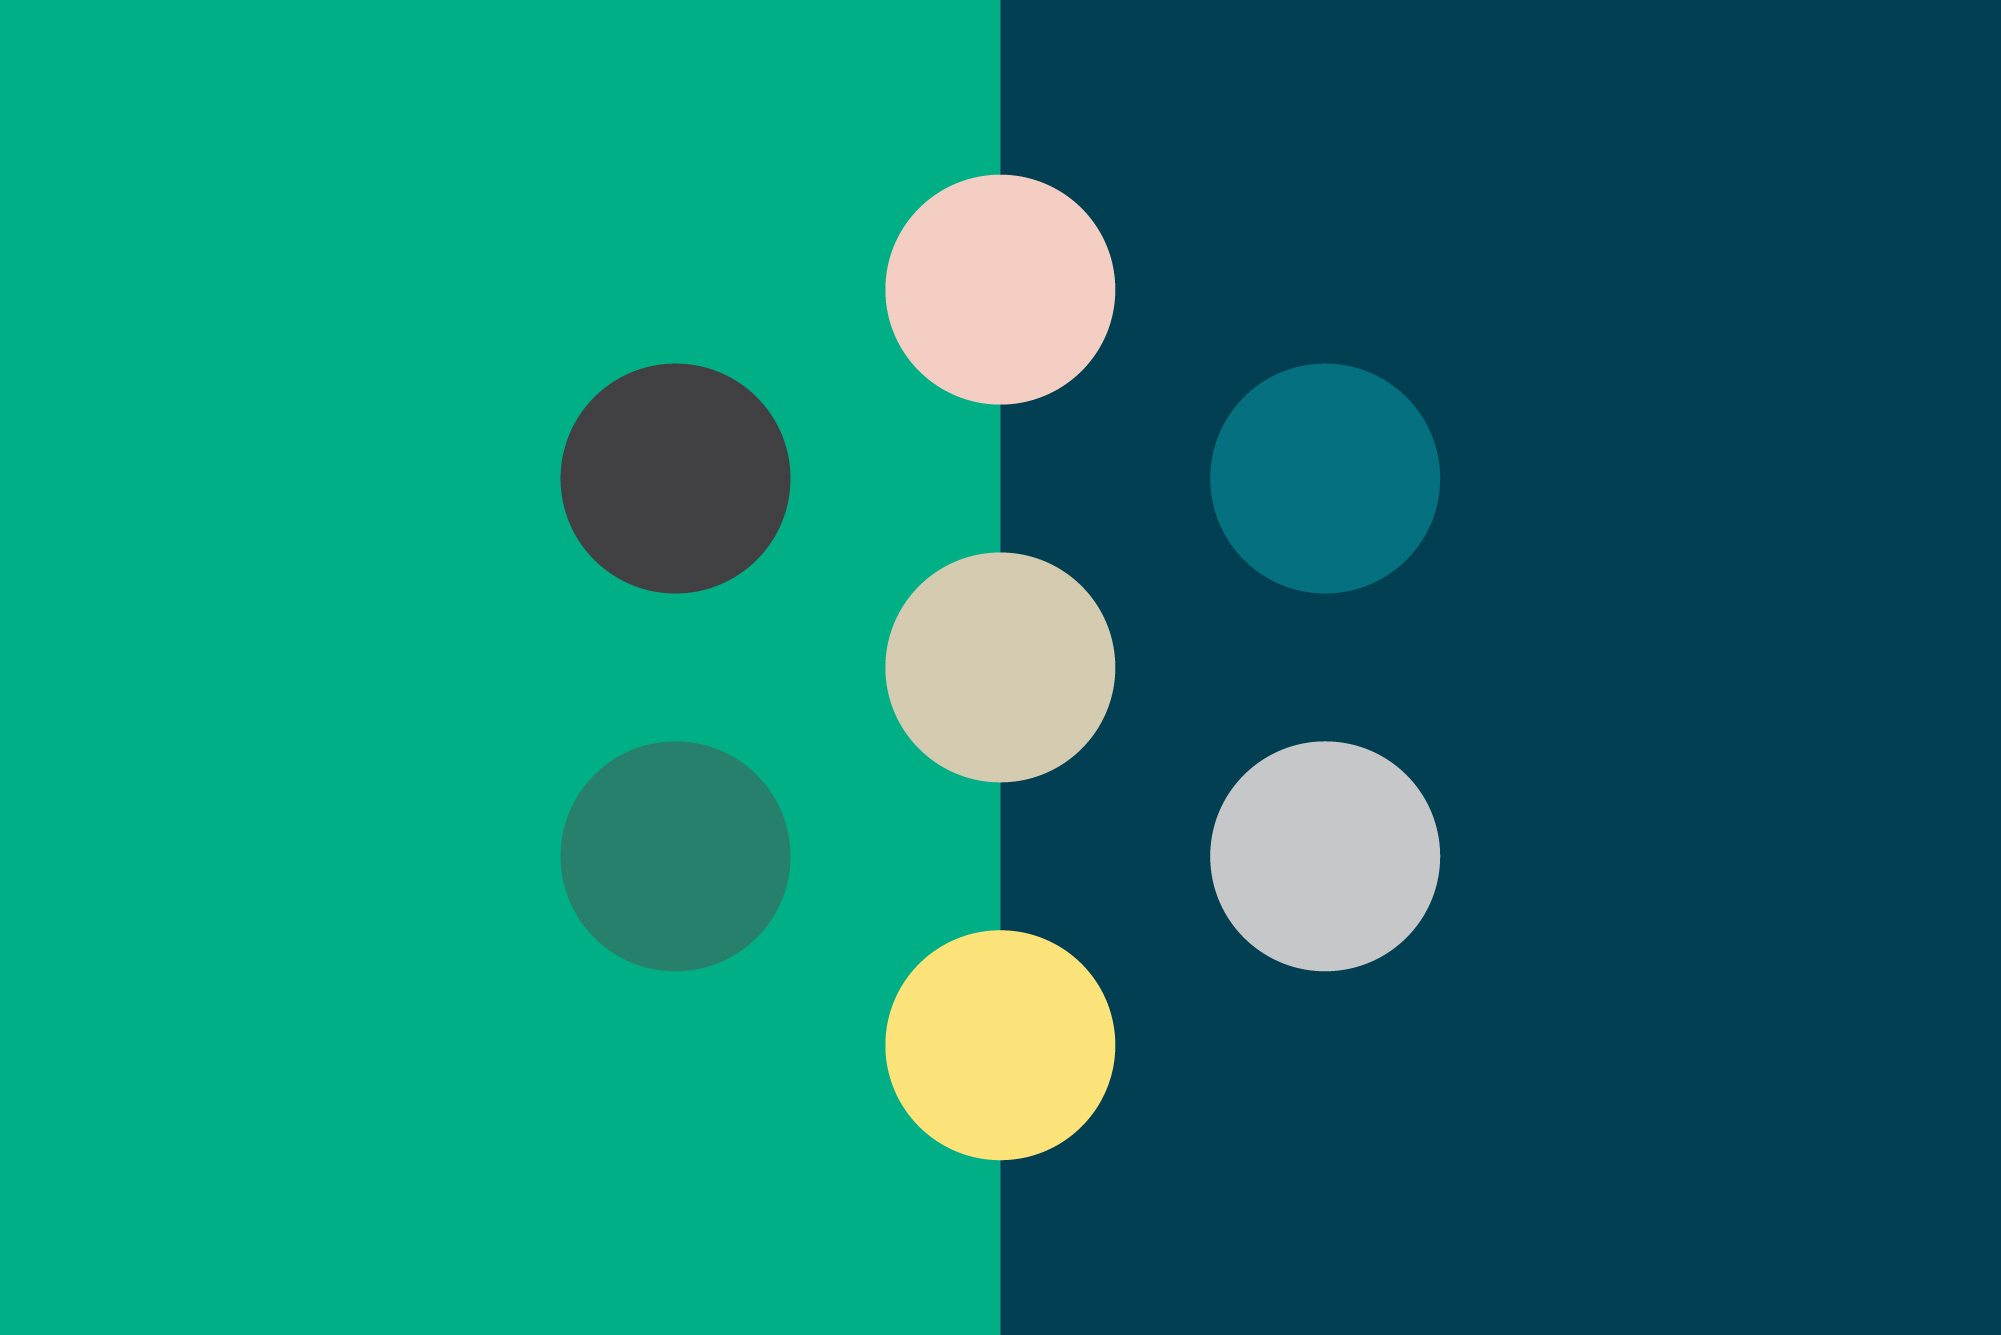 /assets/colab/g3_website_project_colab_colorpalette.jpg